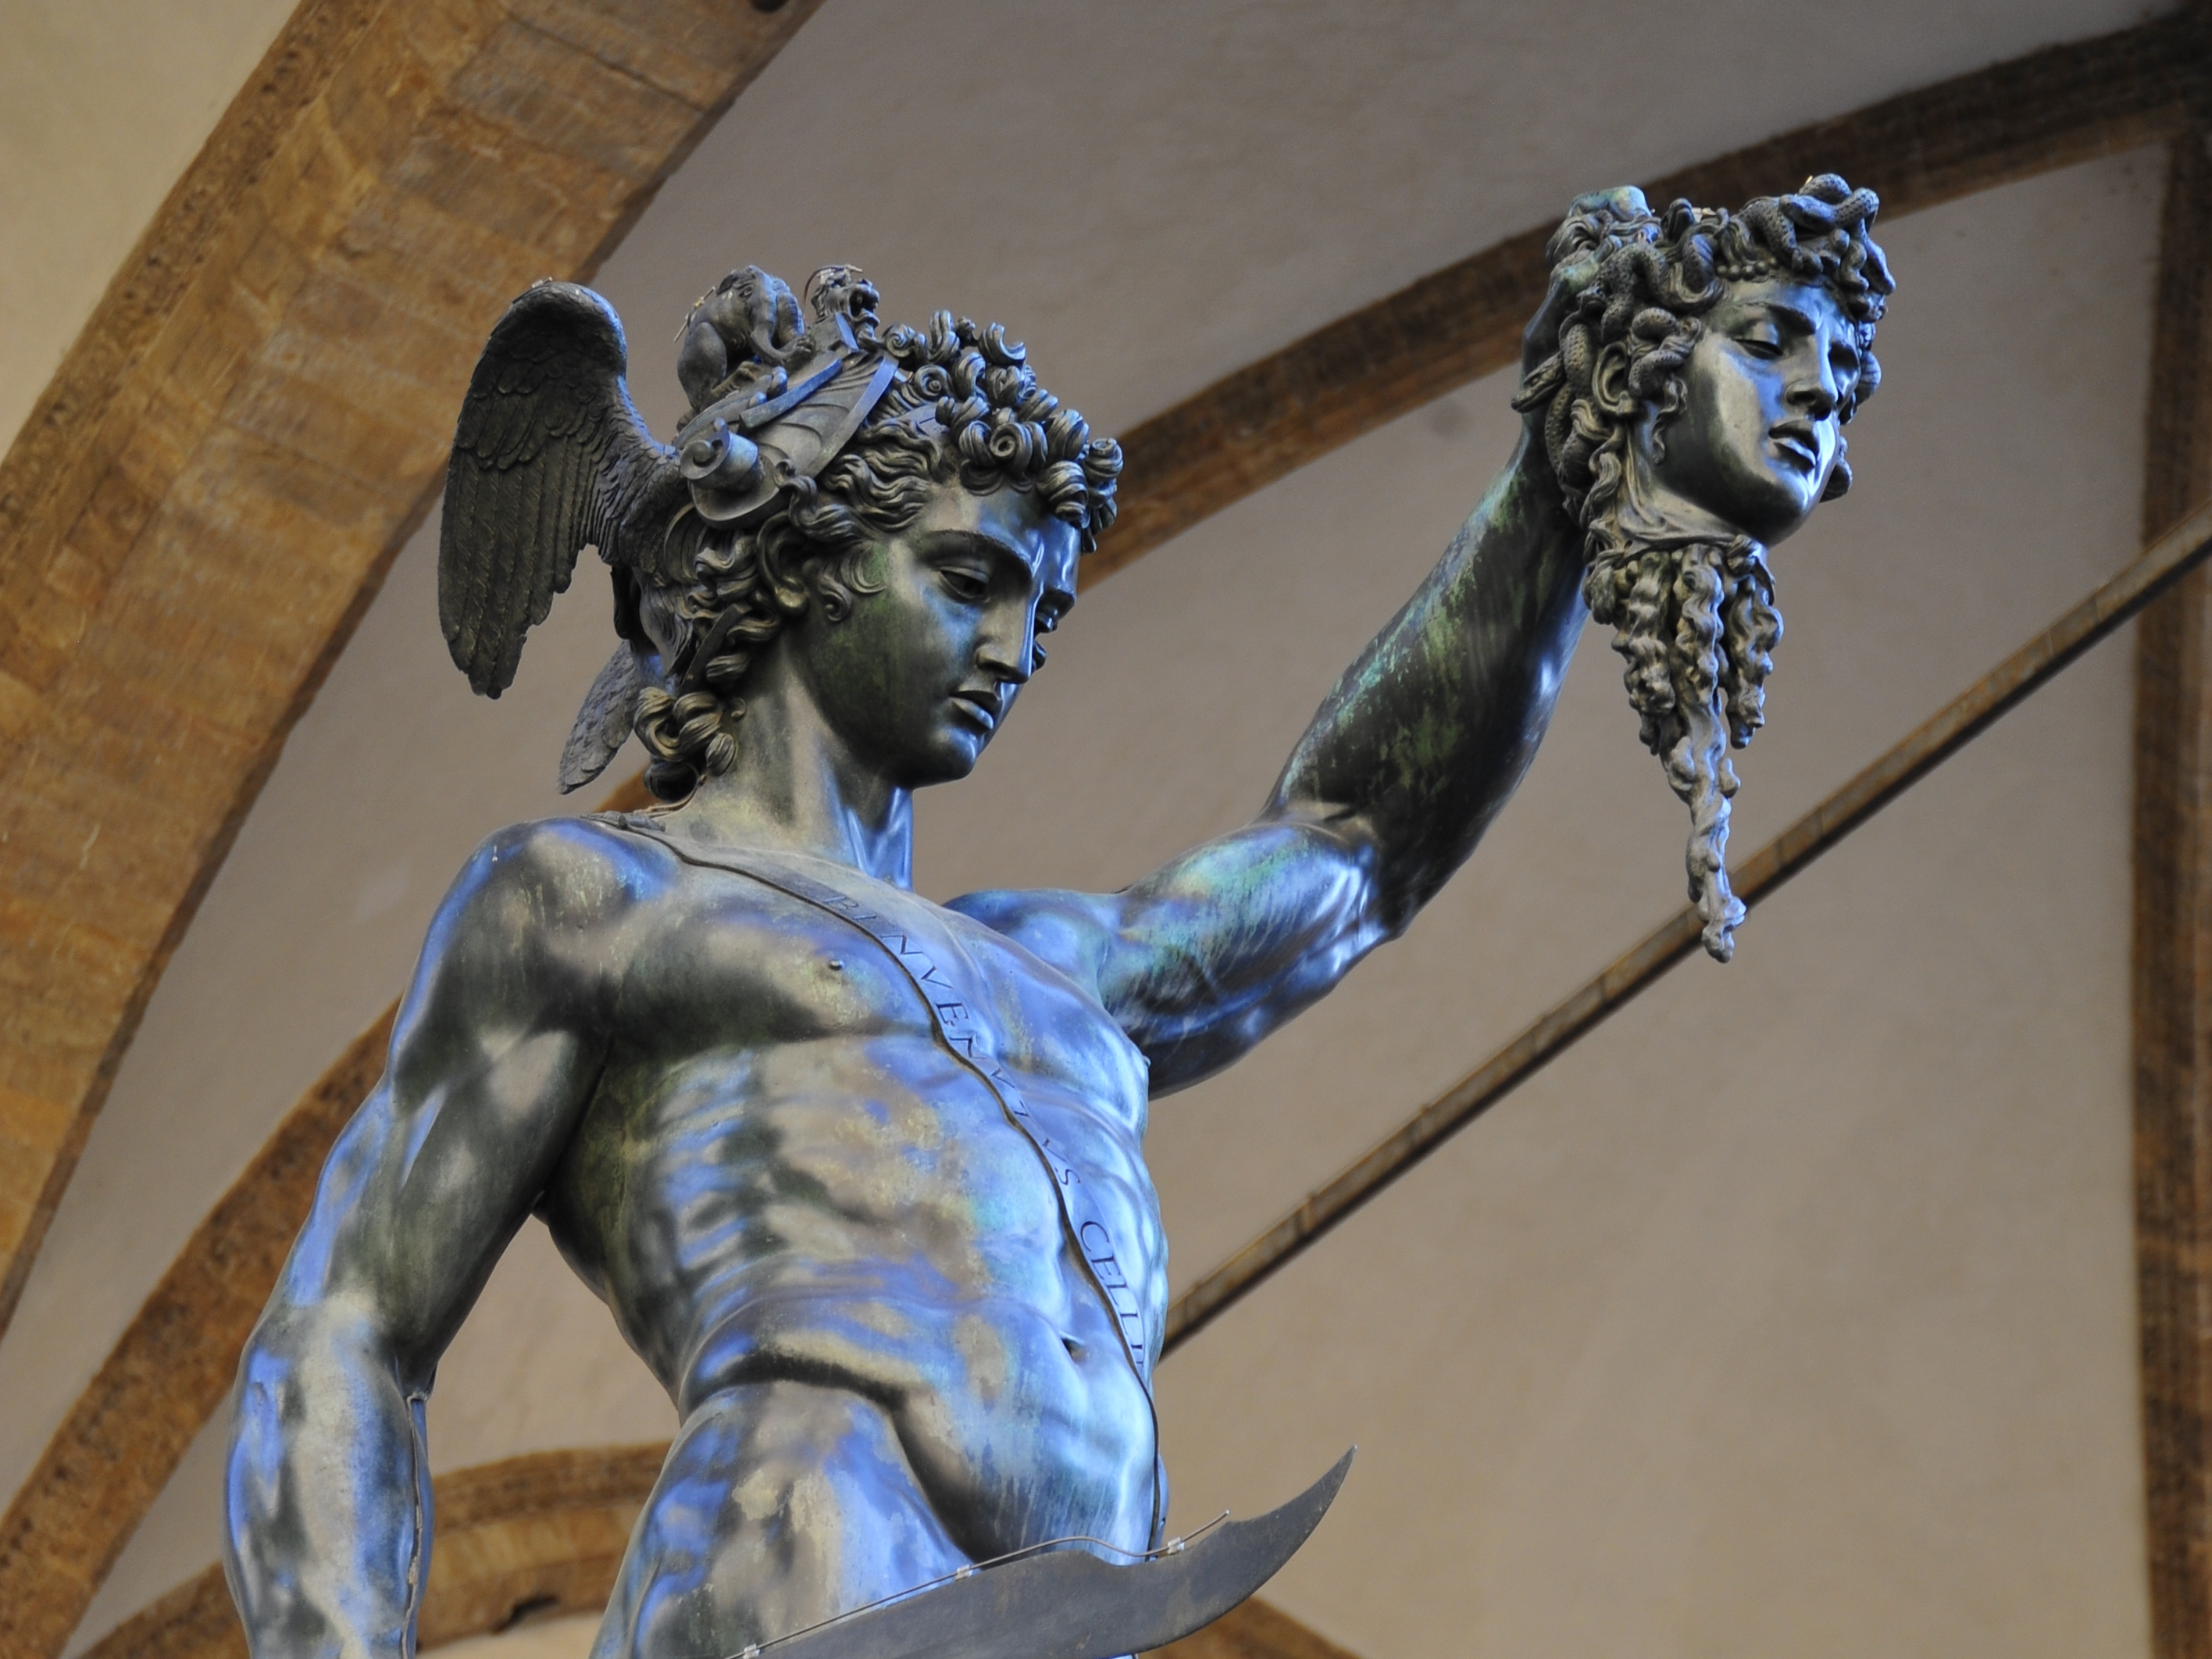 Perseus With The Head Of Medusa Photograph by Marilyn Burton  |Perseus With The Head Of Medusa Painting